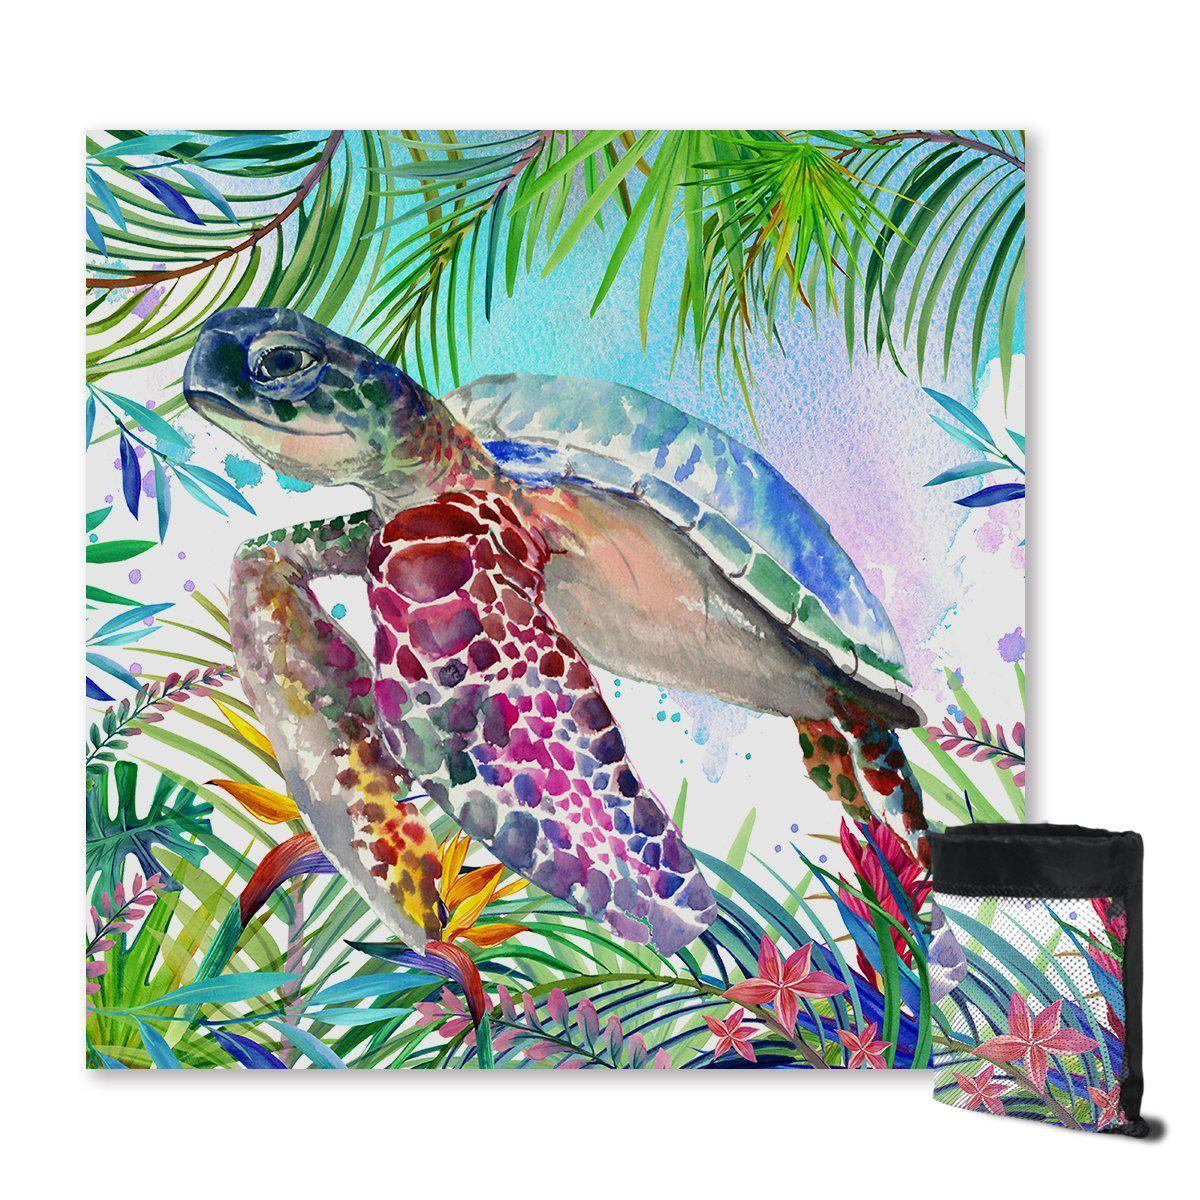 Sand Free Beach Towel-The Original Tropical Sea Turtle Sand Free Towel-Coastal Passion